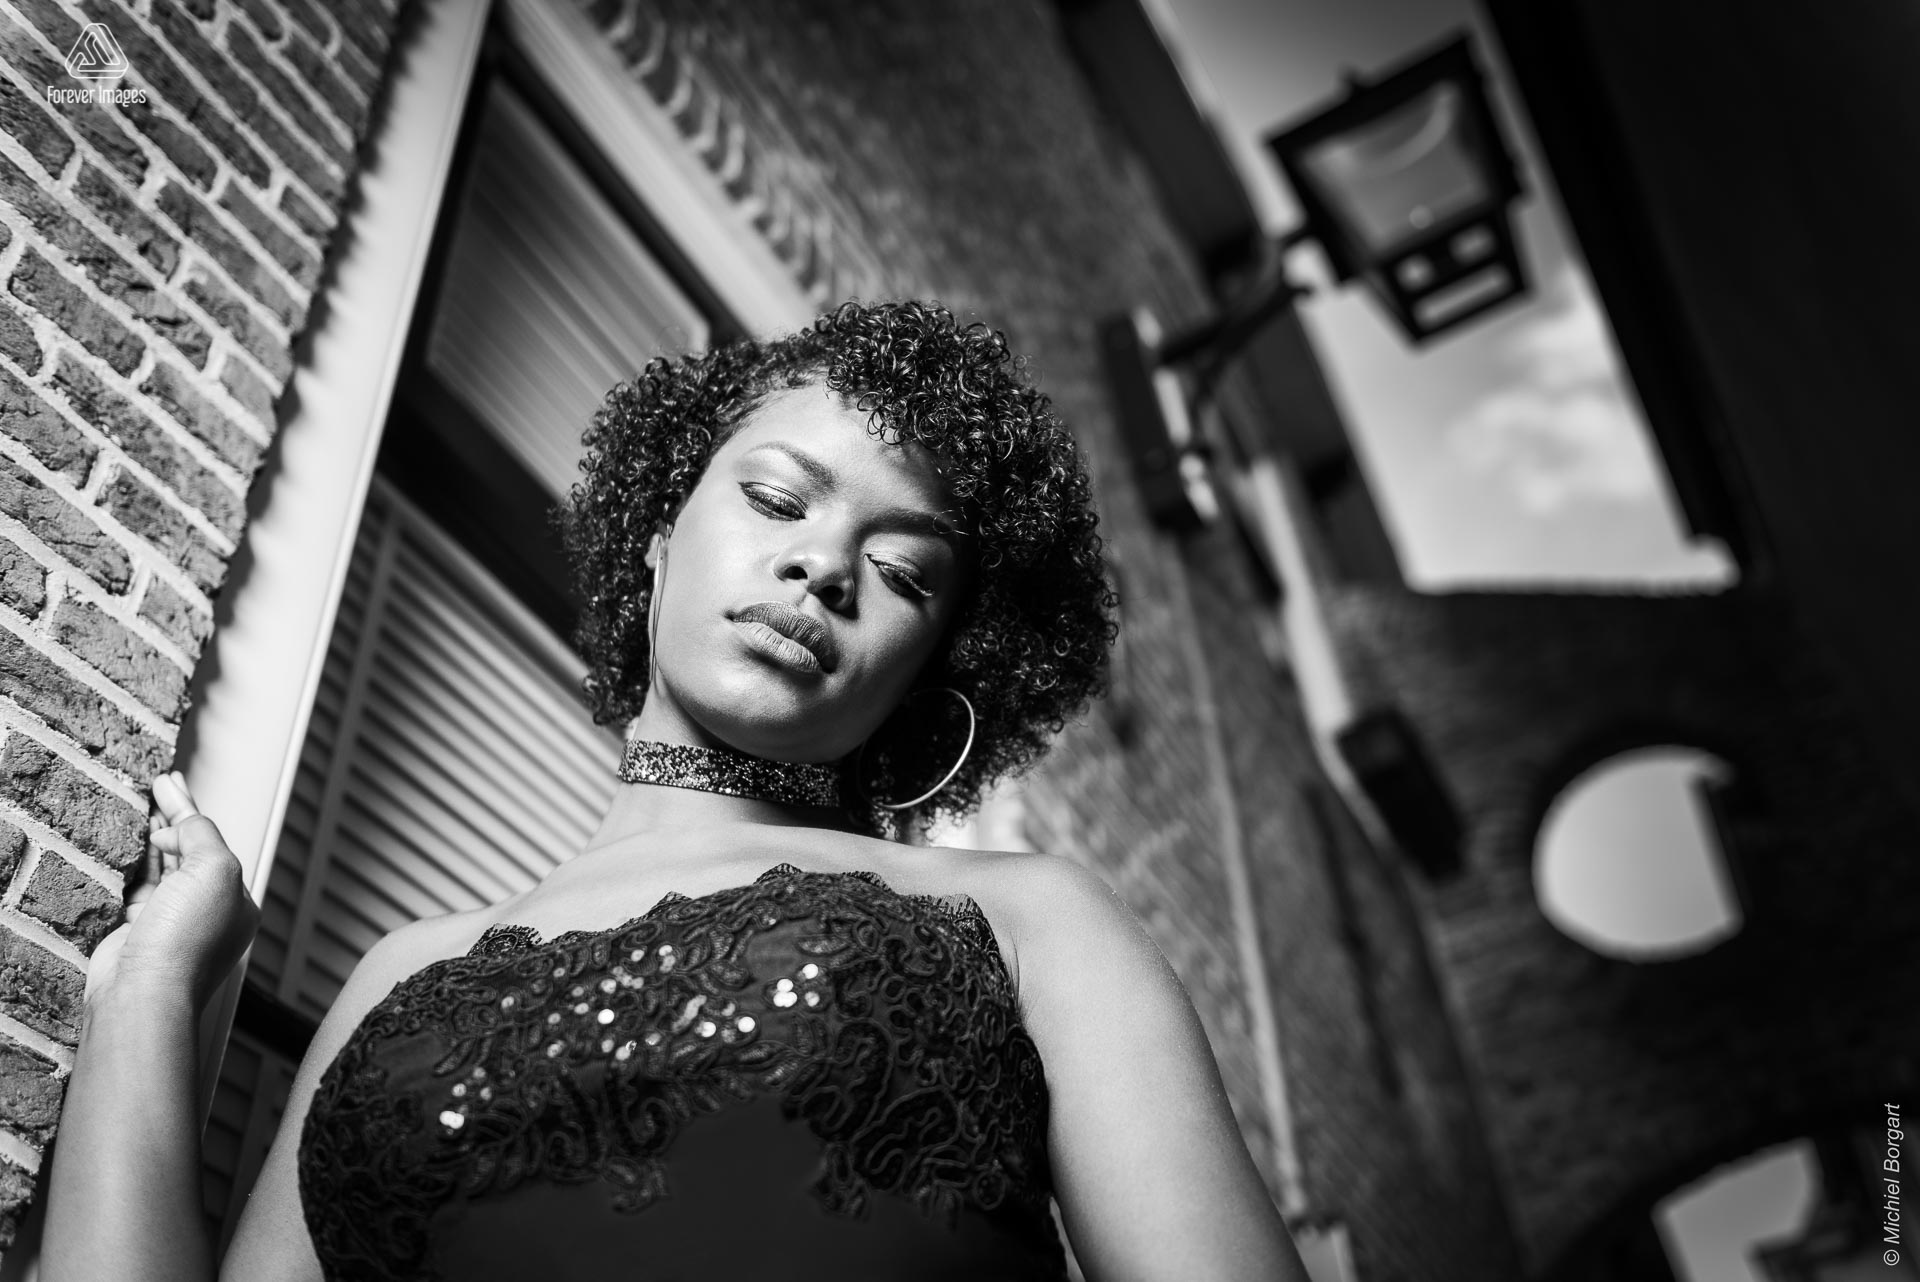 Portrait photo black and white in alley looking down | Mariangel Dolorita Haarlem | Portrait Photographer Michiel Borgart - Forever Images.